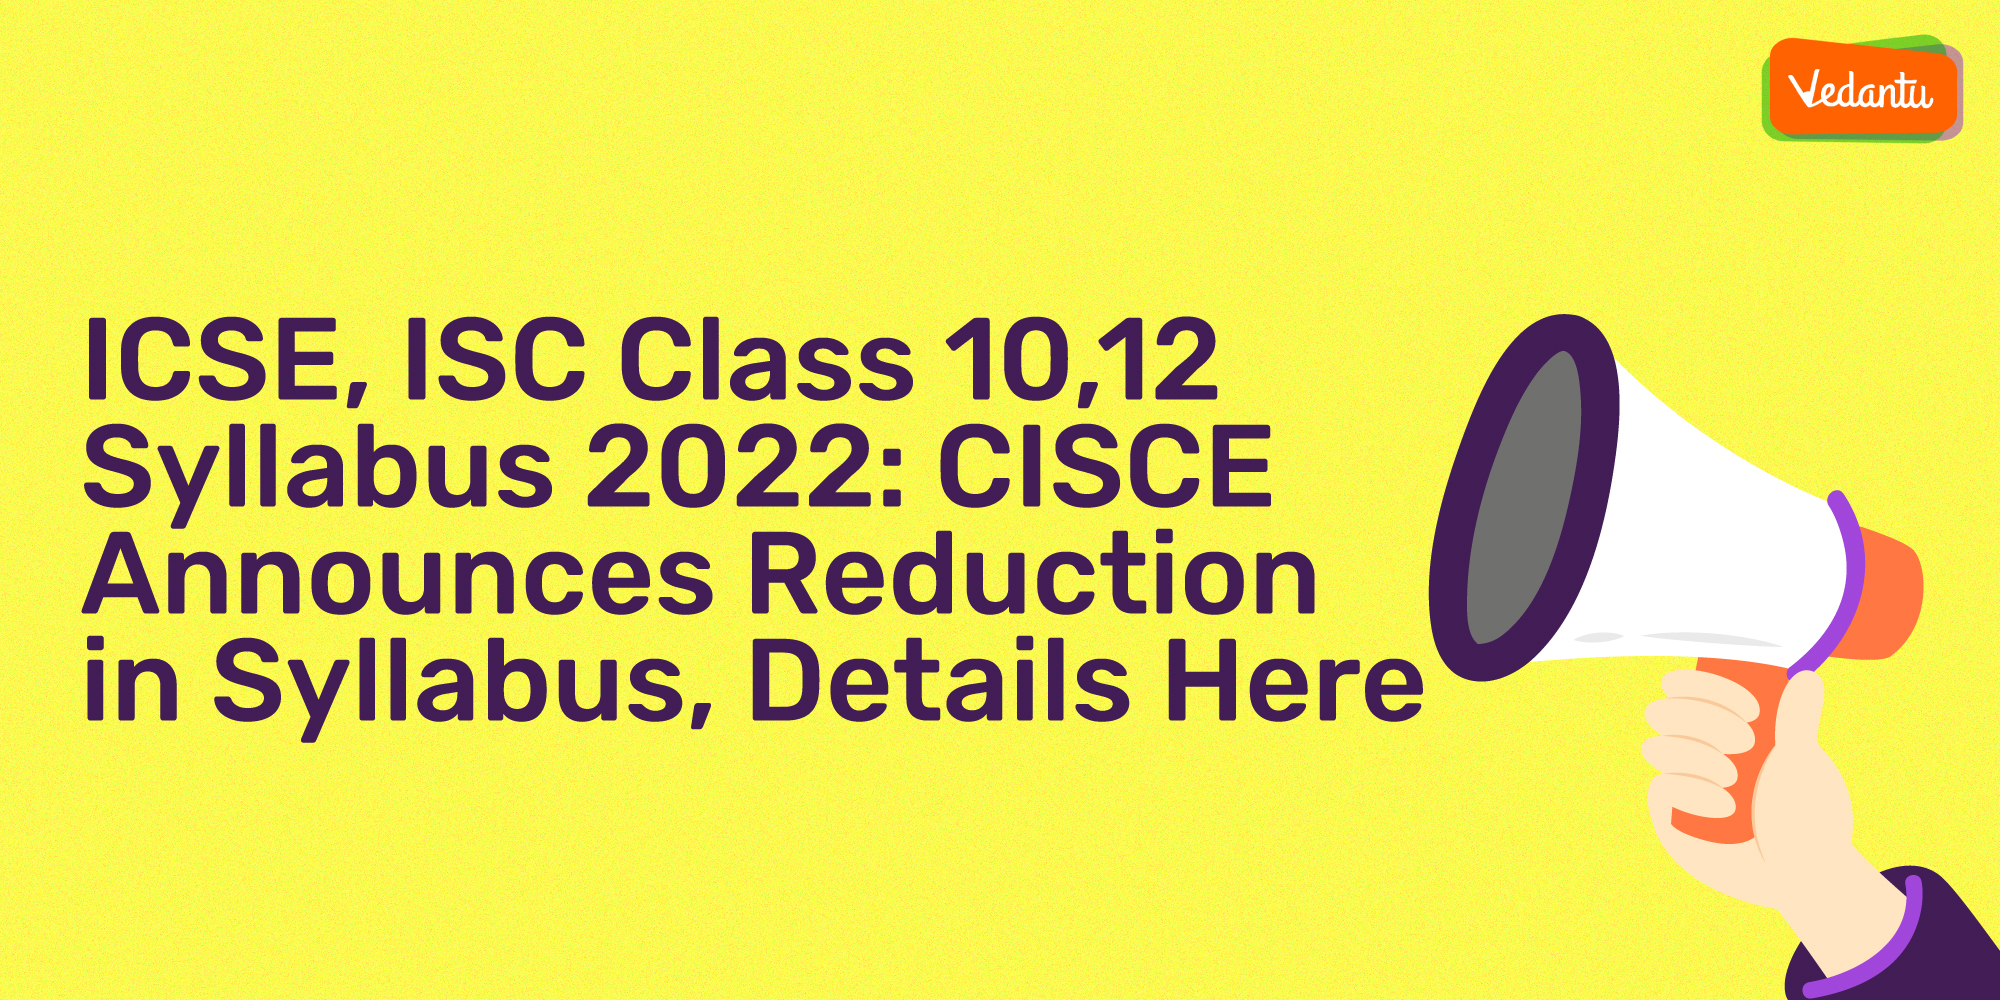 ICSE, ISC Class 10 and 12 Syllabus 2022: CISCE Announces Reduction in Syllabus, Details Here